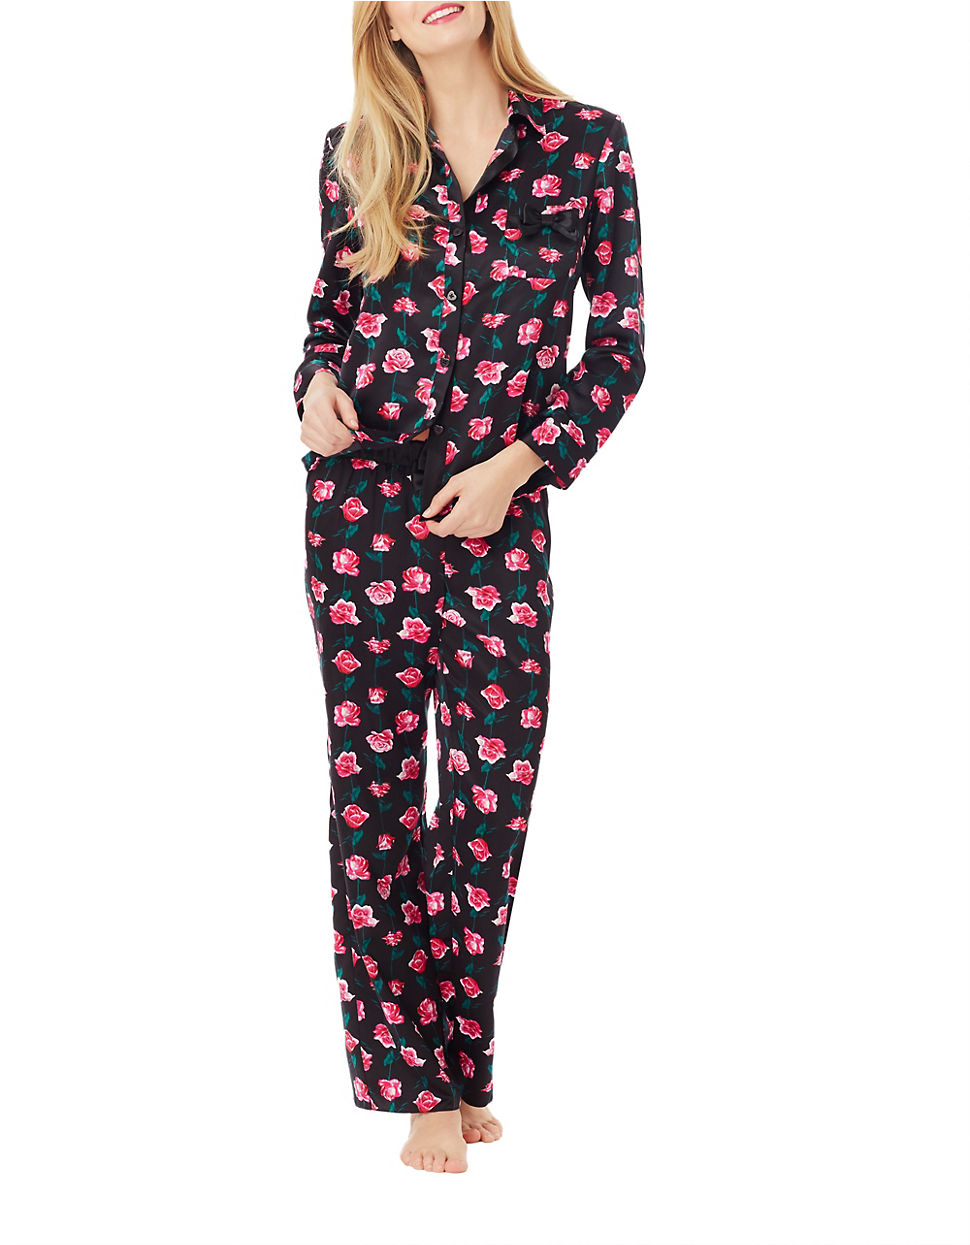 Enjoy free shipping and easy returns every day at Kohl's. Find great deals on Womens Black Pajama Bottoms at Kohl's today!